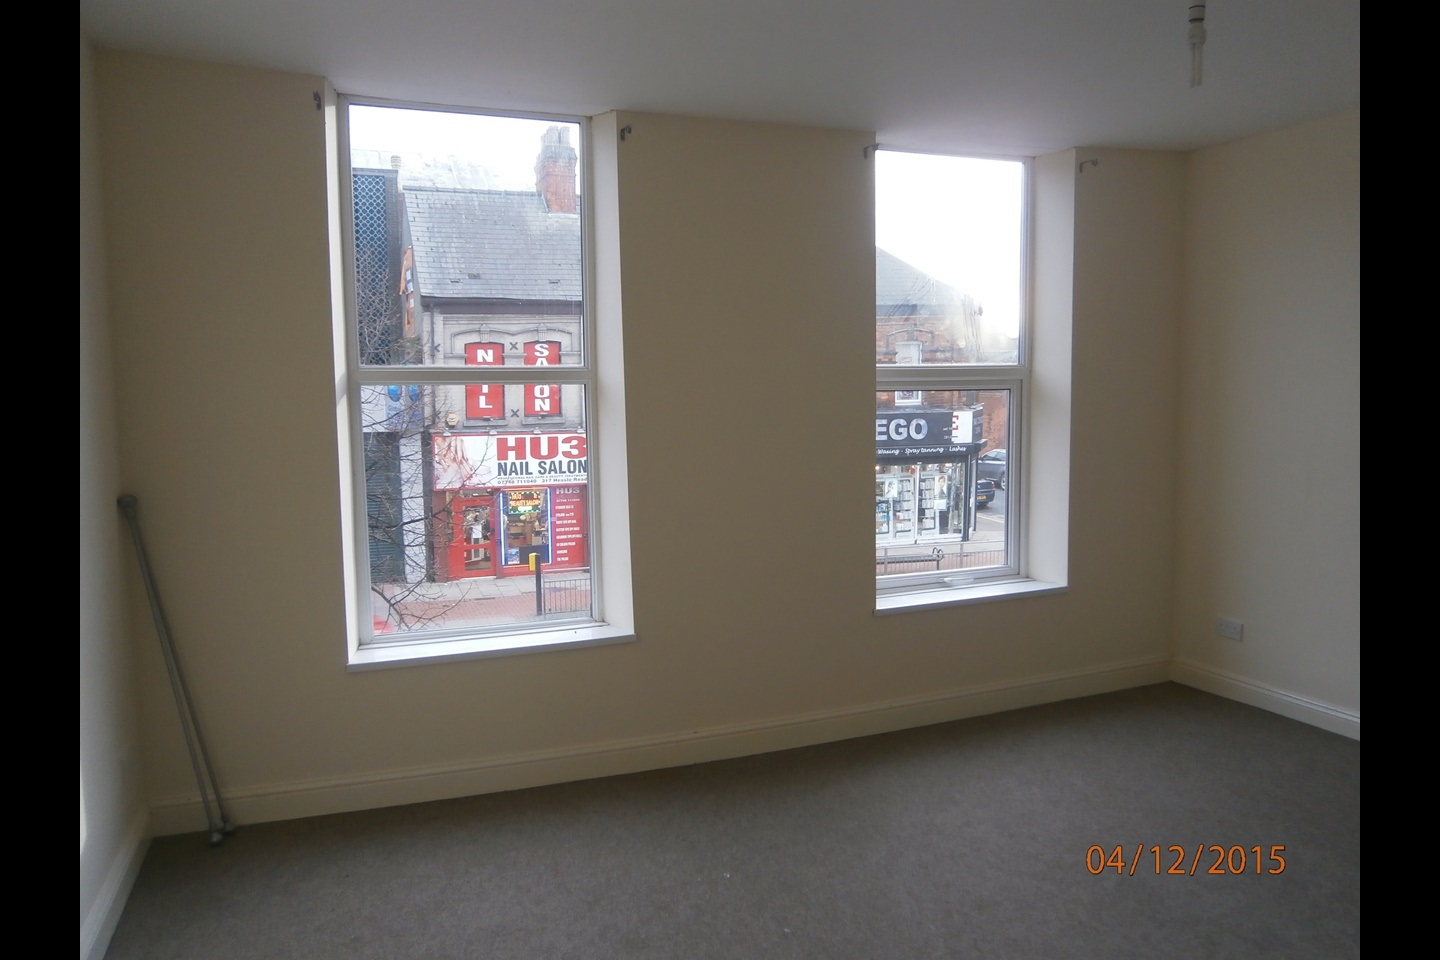 Hull - Bedsit, Hessle Rd, HU3 - To Rent Now for £303 33 p/m